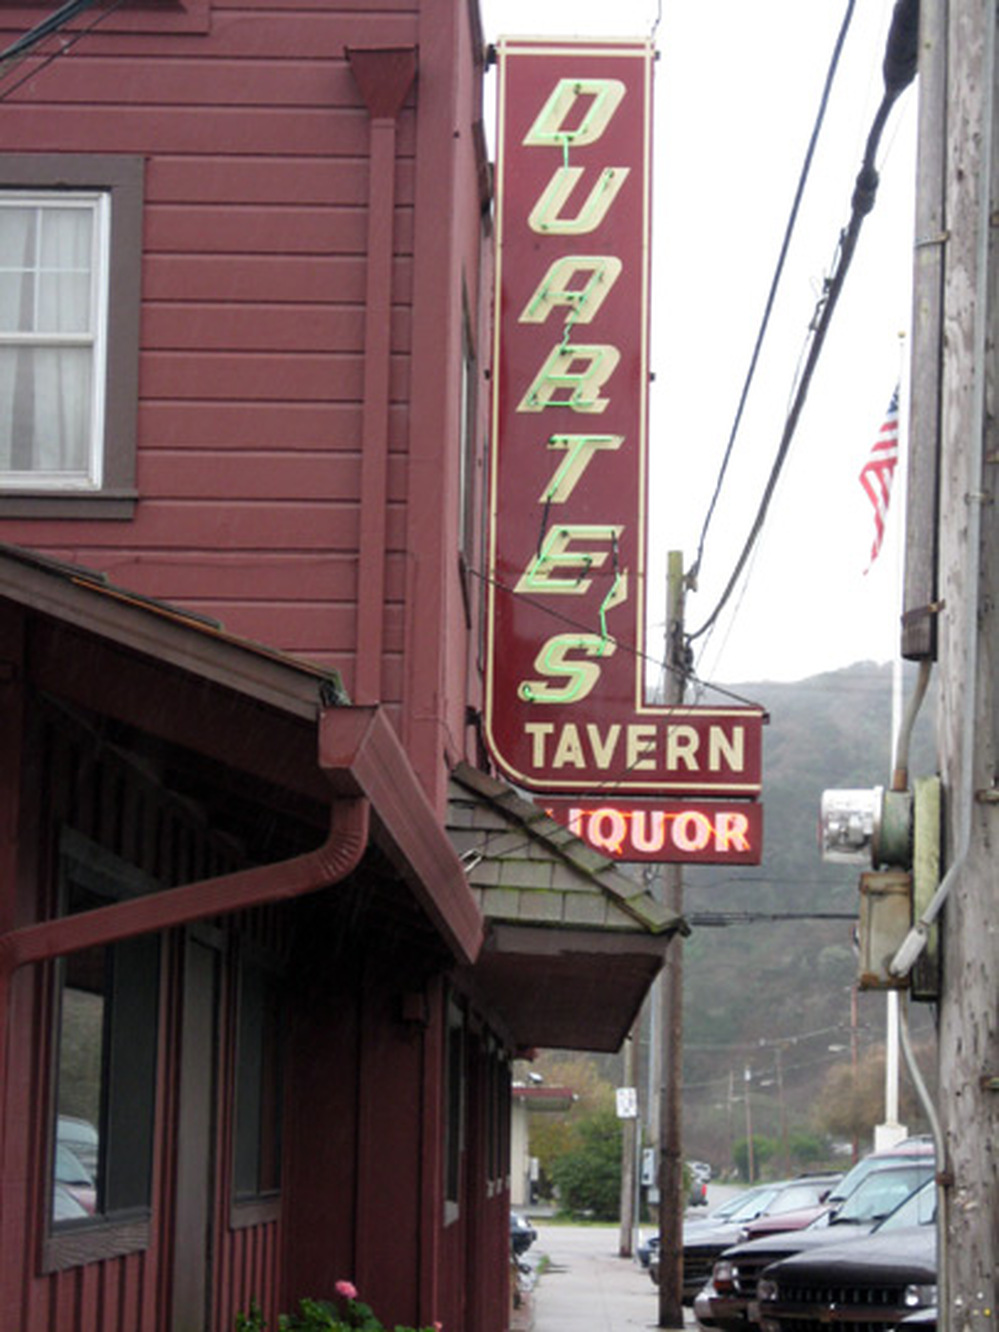 The Duarte's Tavern sign has been around since the 1930s.